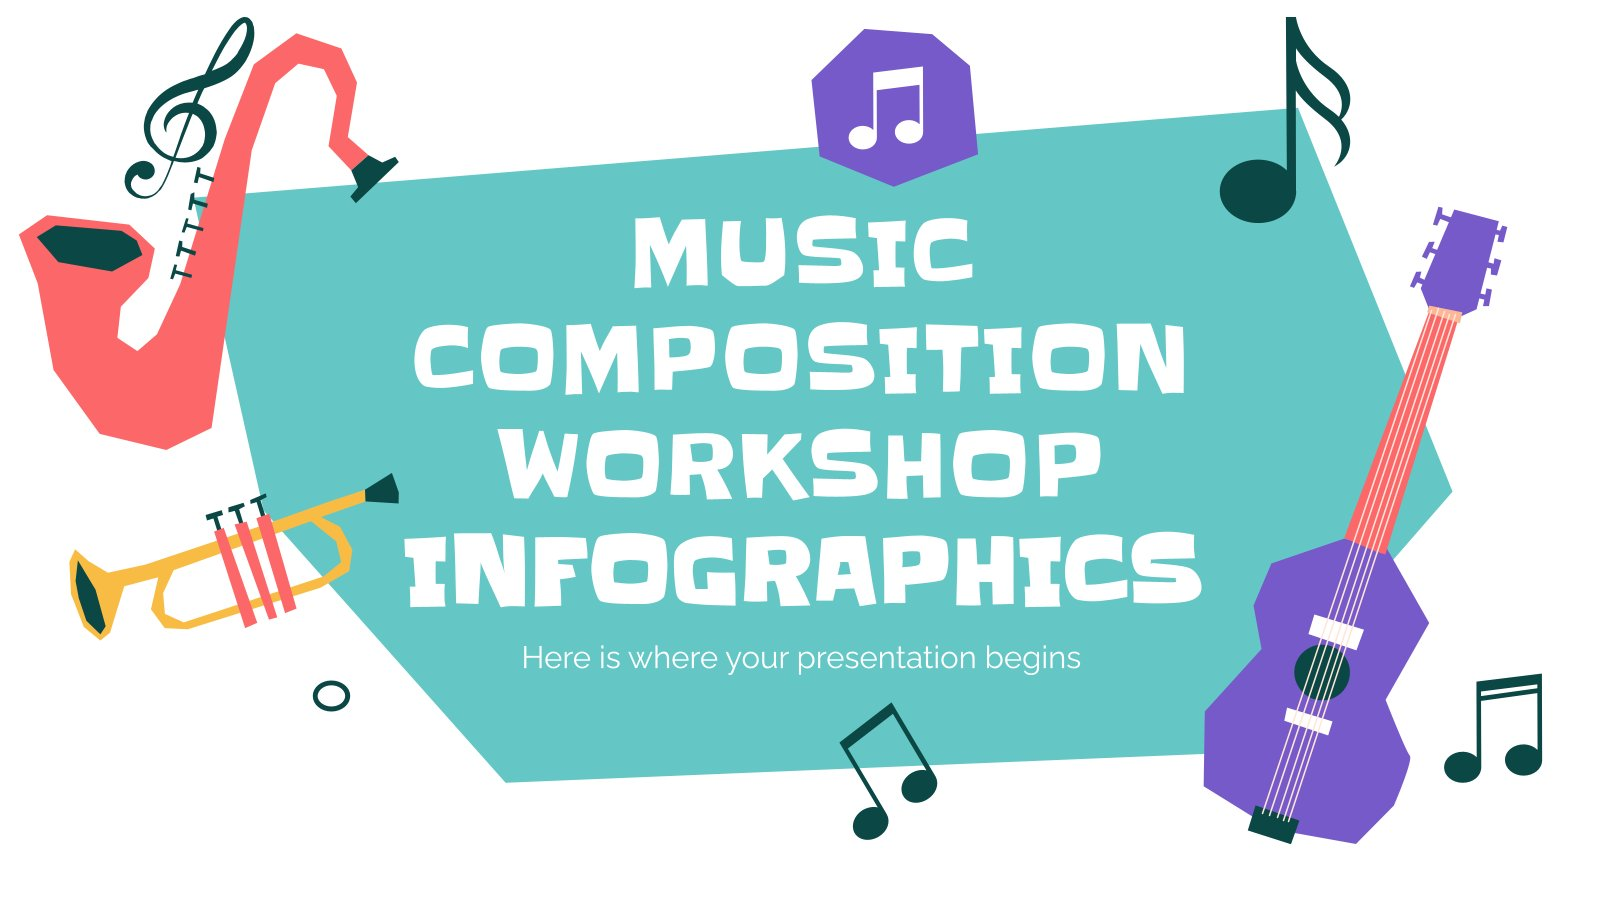 Music Composition Workshop Infographics presentation template